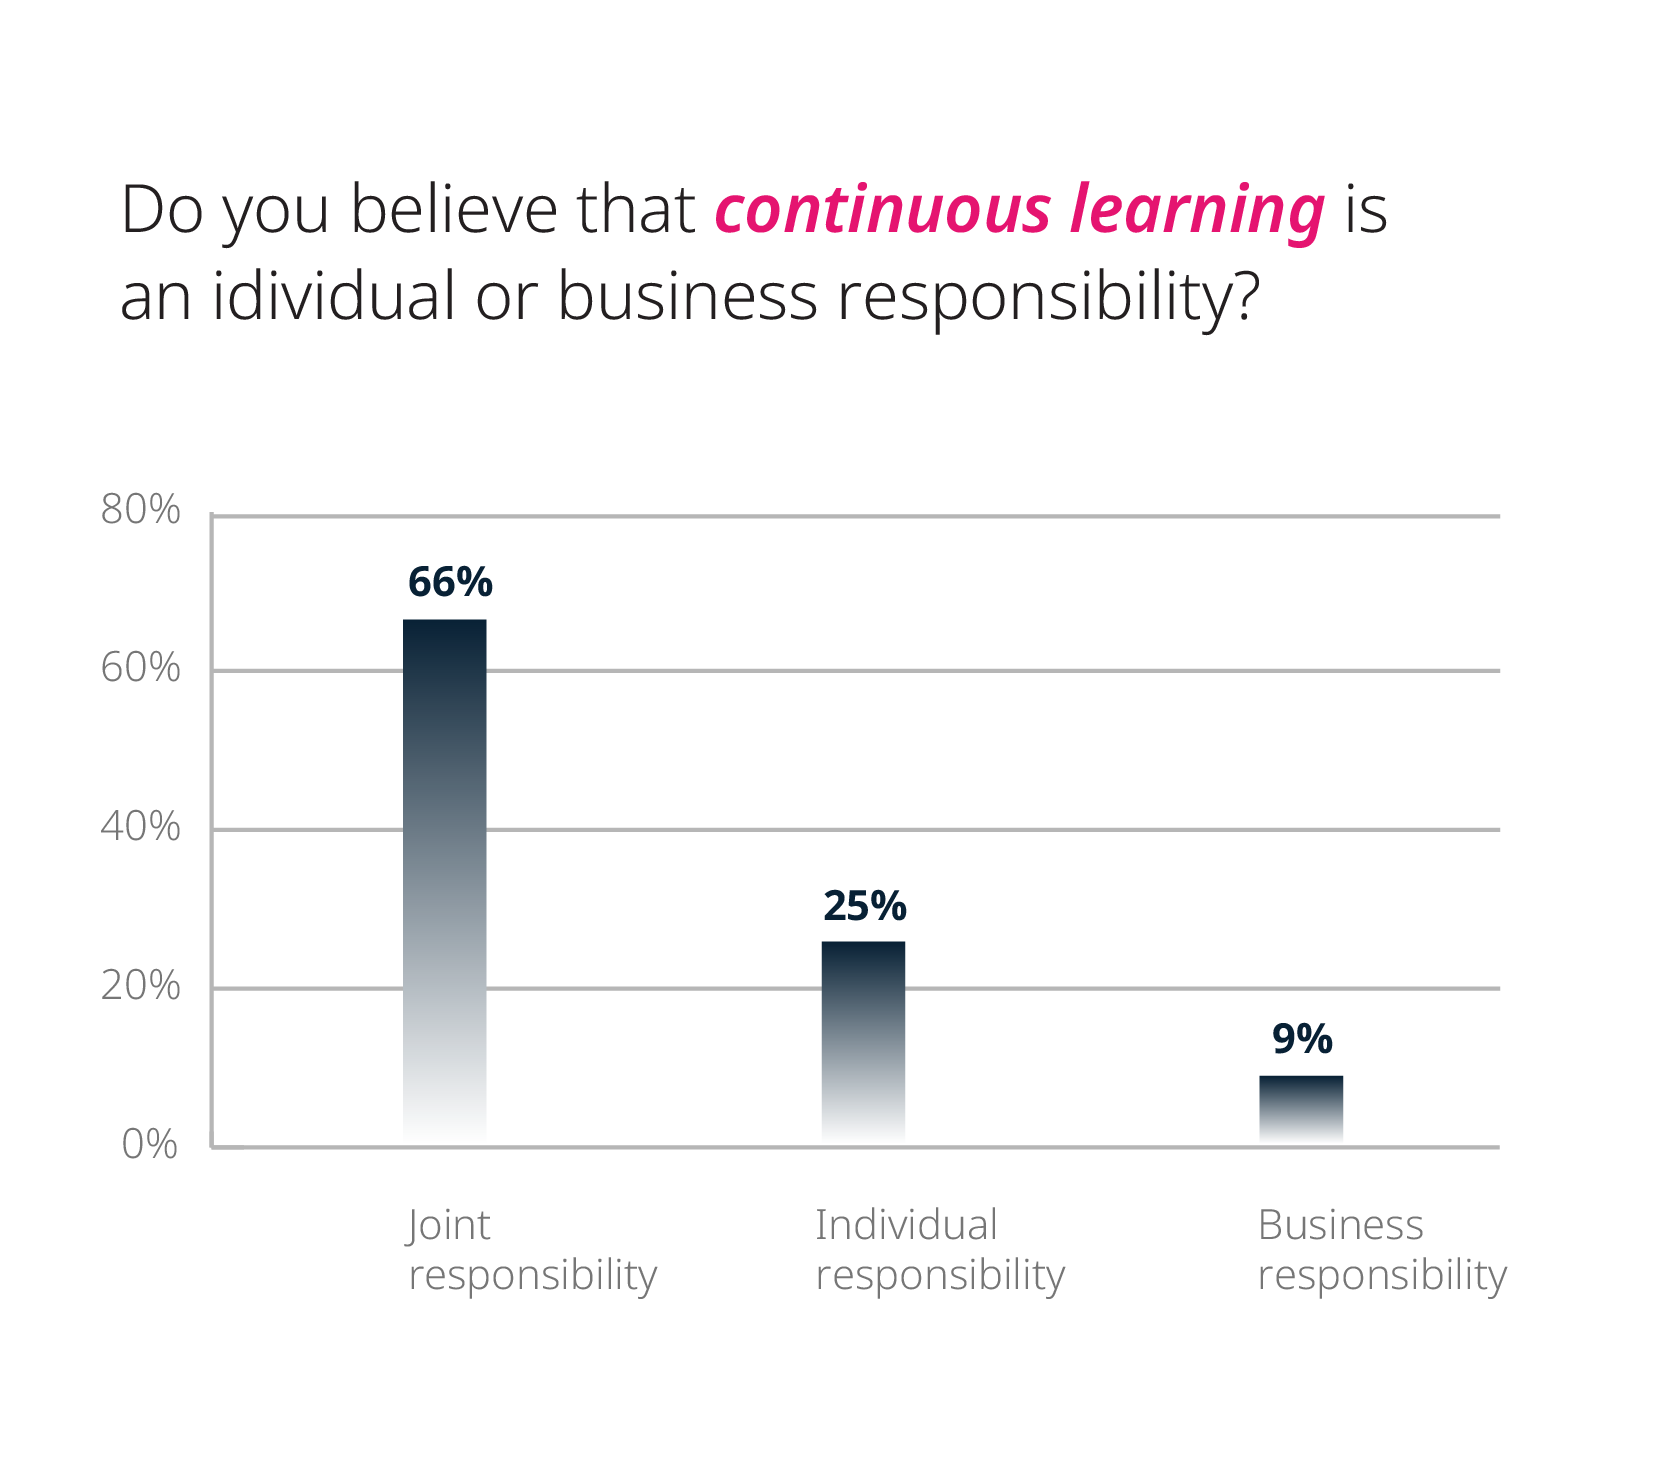 Do you believe that continuous learning is an individual or business responsibility? Percentage breakdown